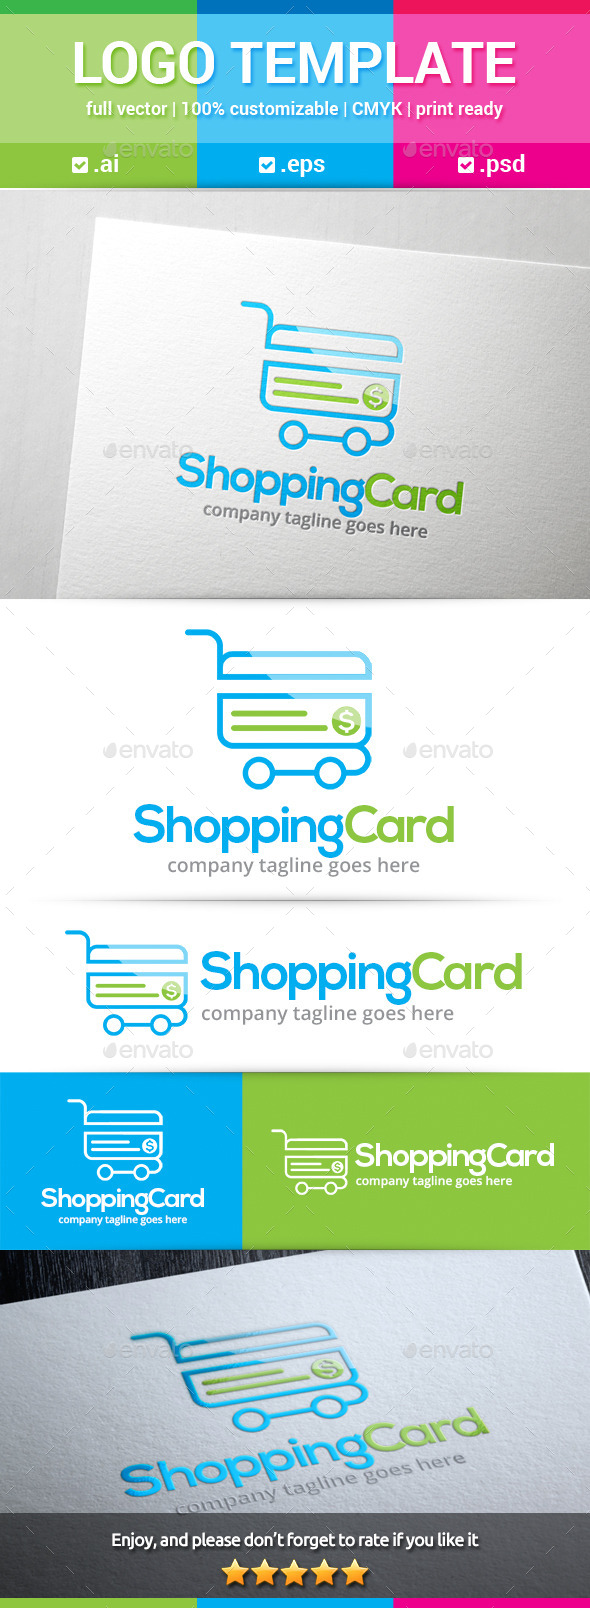 GraphicRiver Shopping Card Logo 10406467